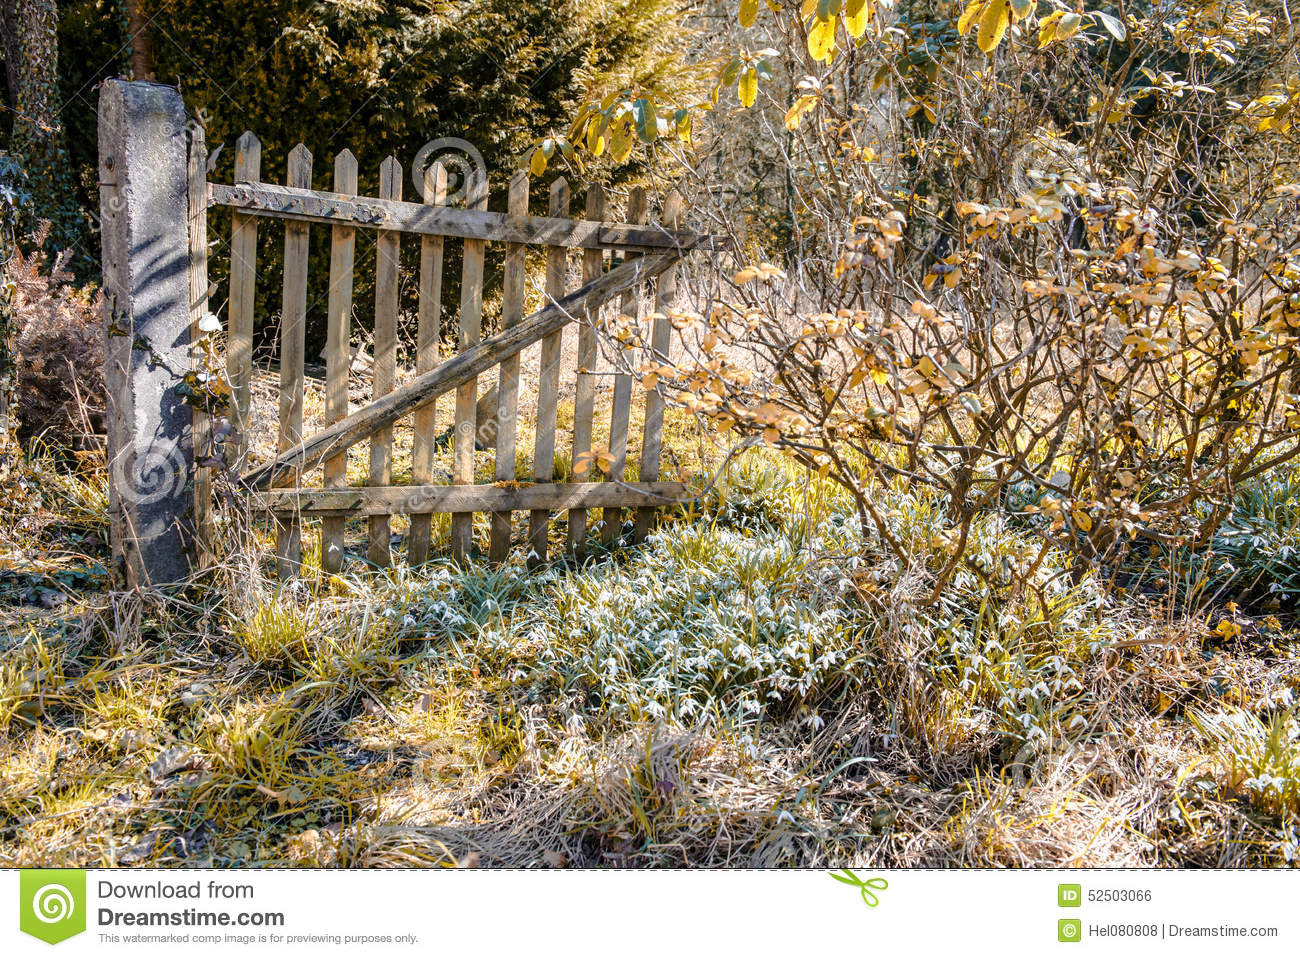 Porte au jardin abandonn photo stock image 52503066 for Au jardin